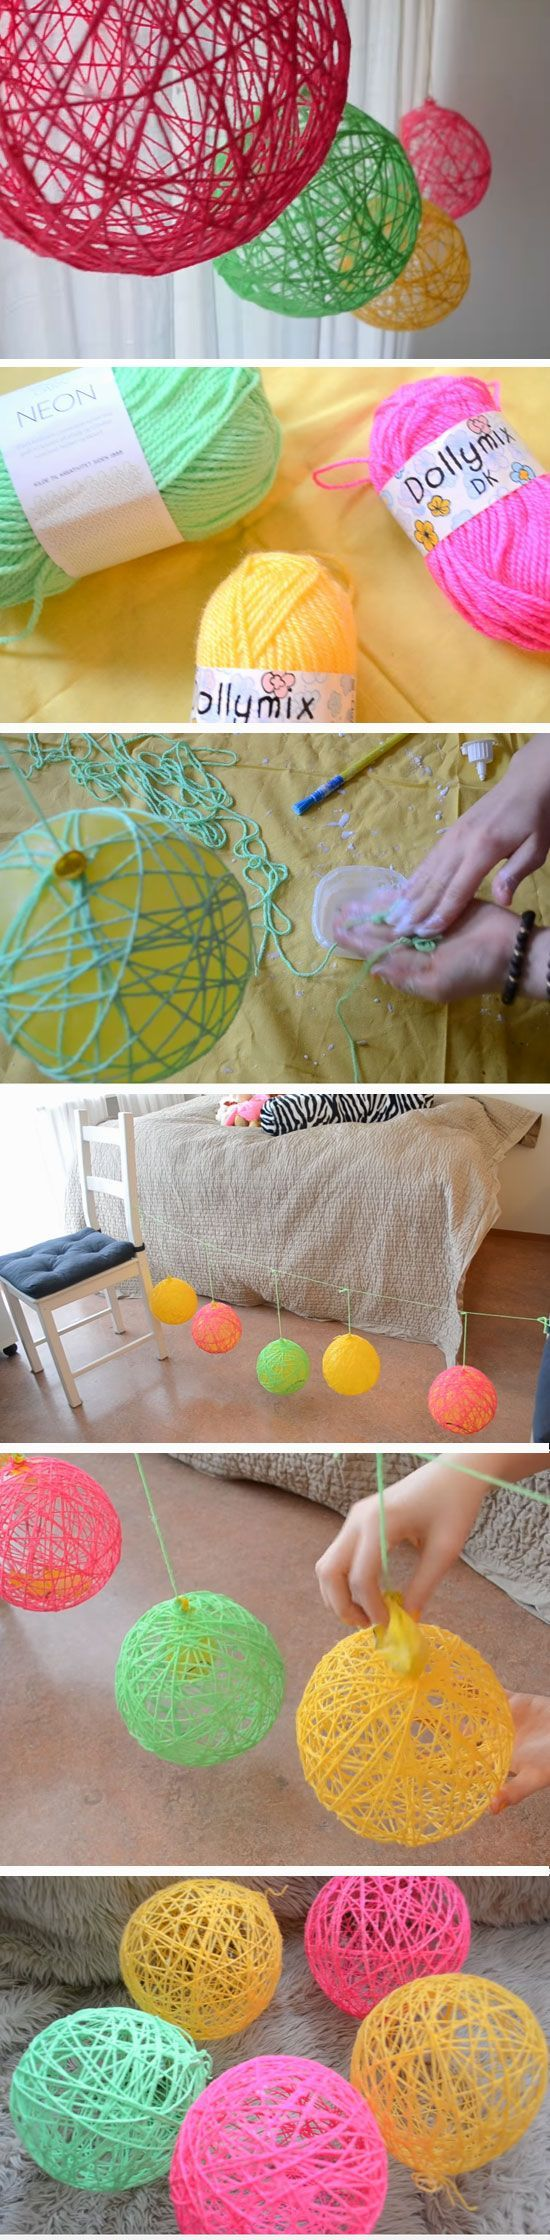 Yarn Orbs | DIY Spring Room Decor Ideas for Teens | Easy Summer Crafts for Kids to Make